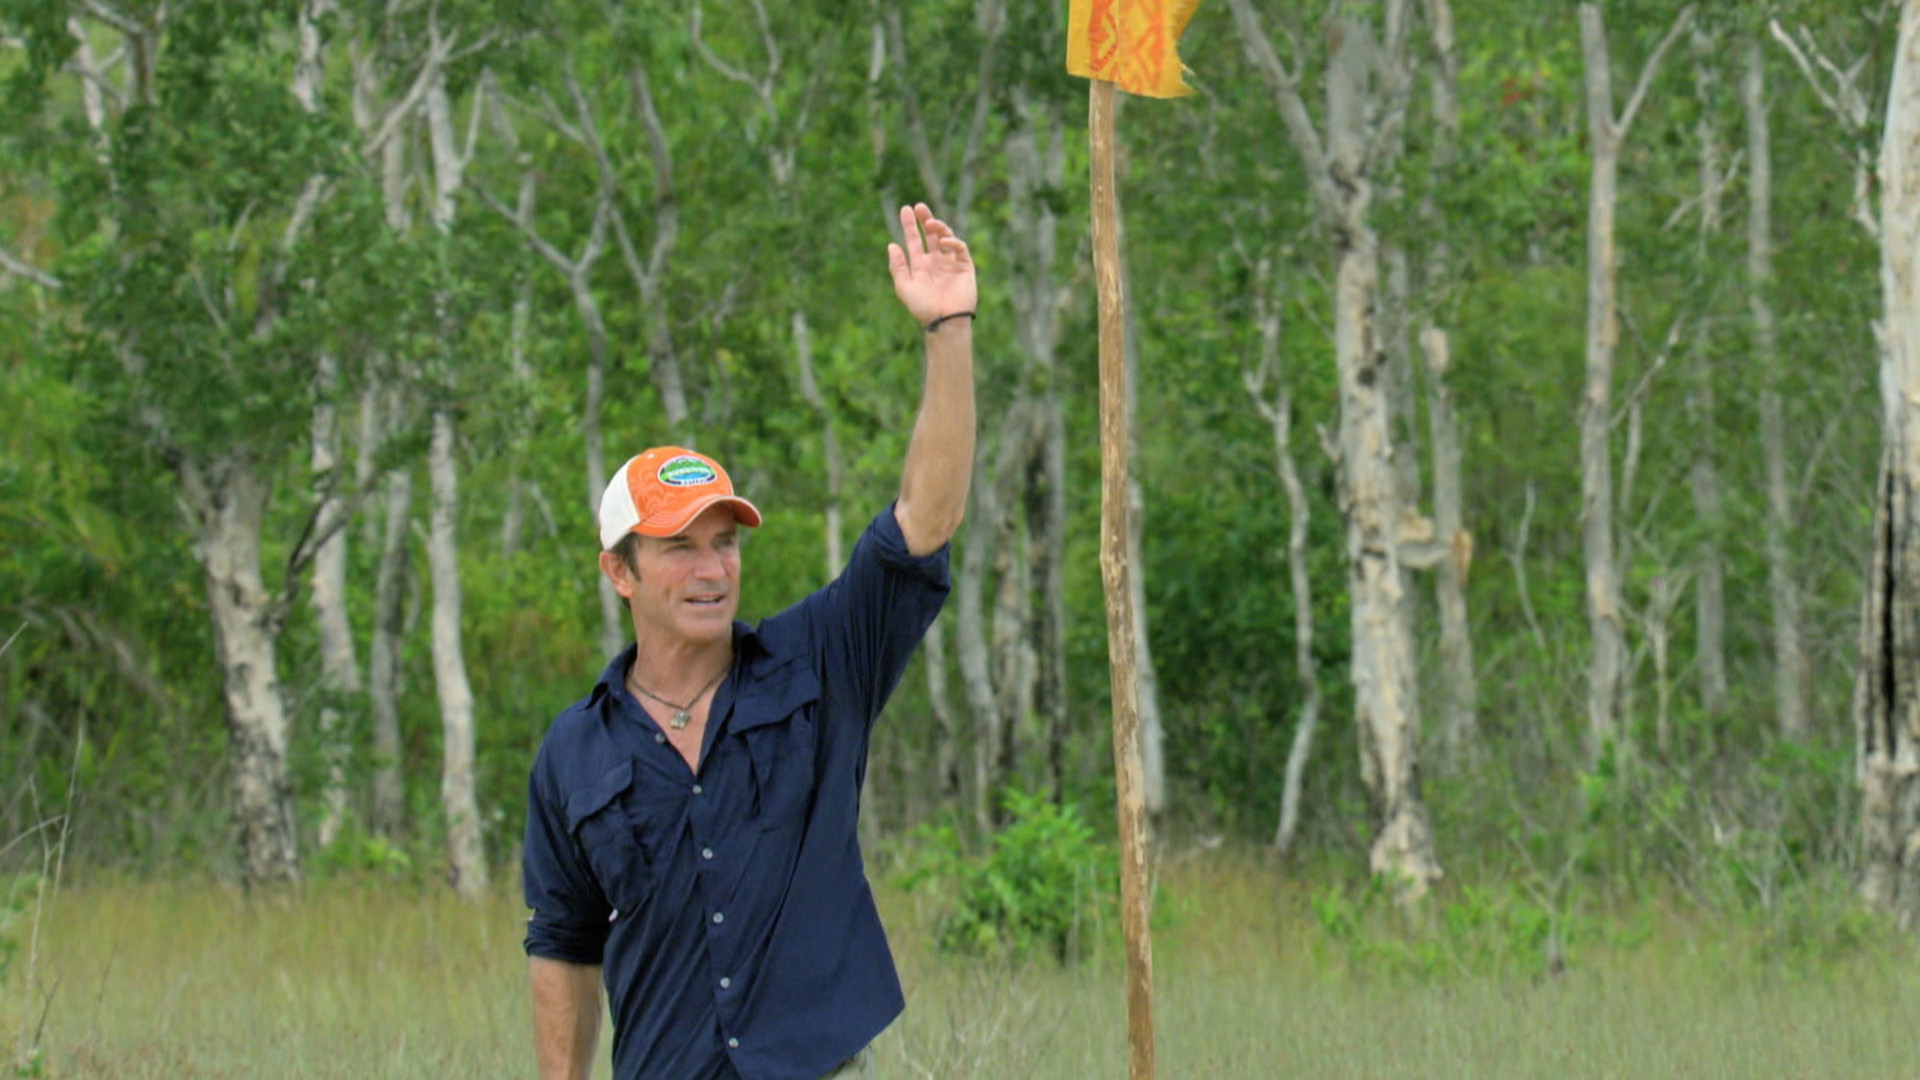 Host Jeff Probst signs for the start of the next Individual Immunity Challenge.